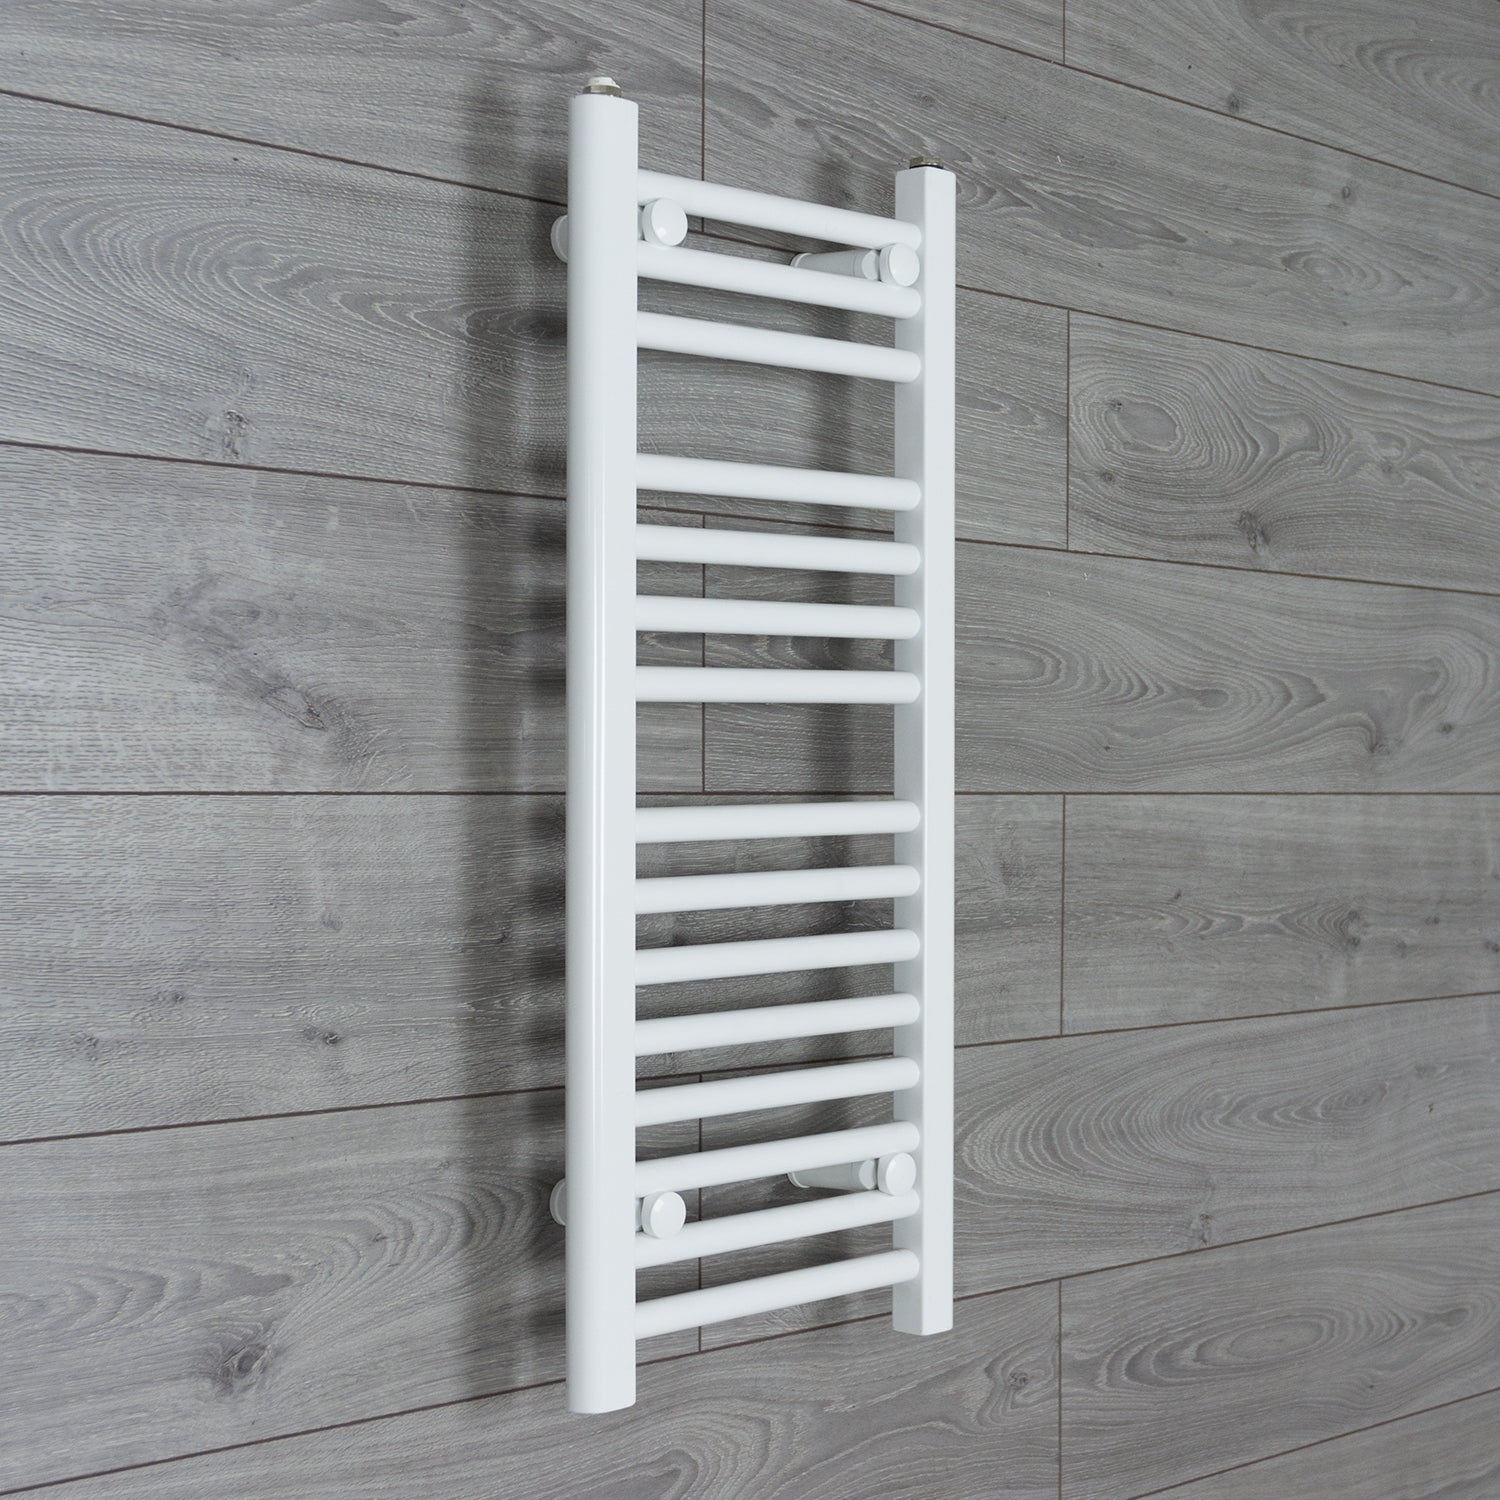 350mm Wide 800mm High Flat WHITE Pre-Filled Electric Heated Towel Rail Radiator HTR